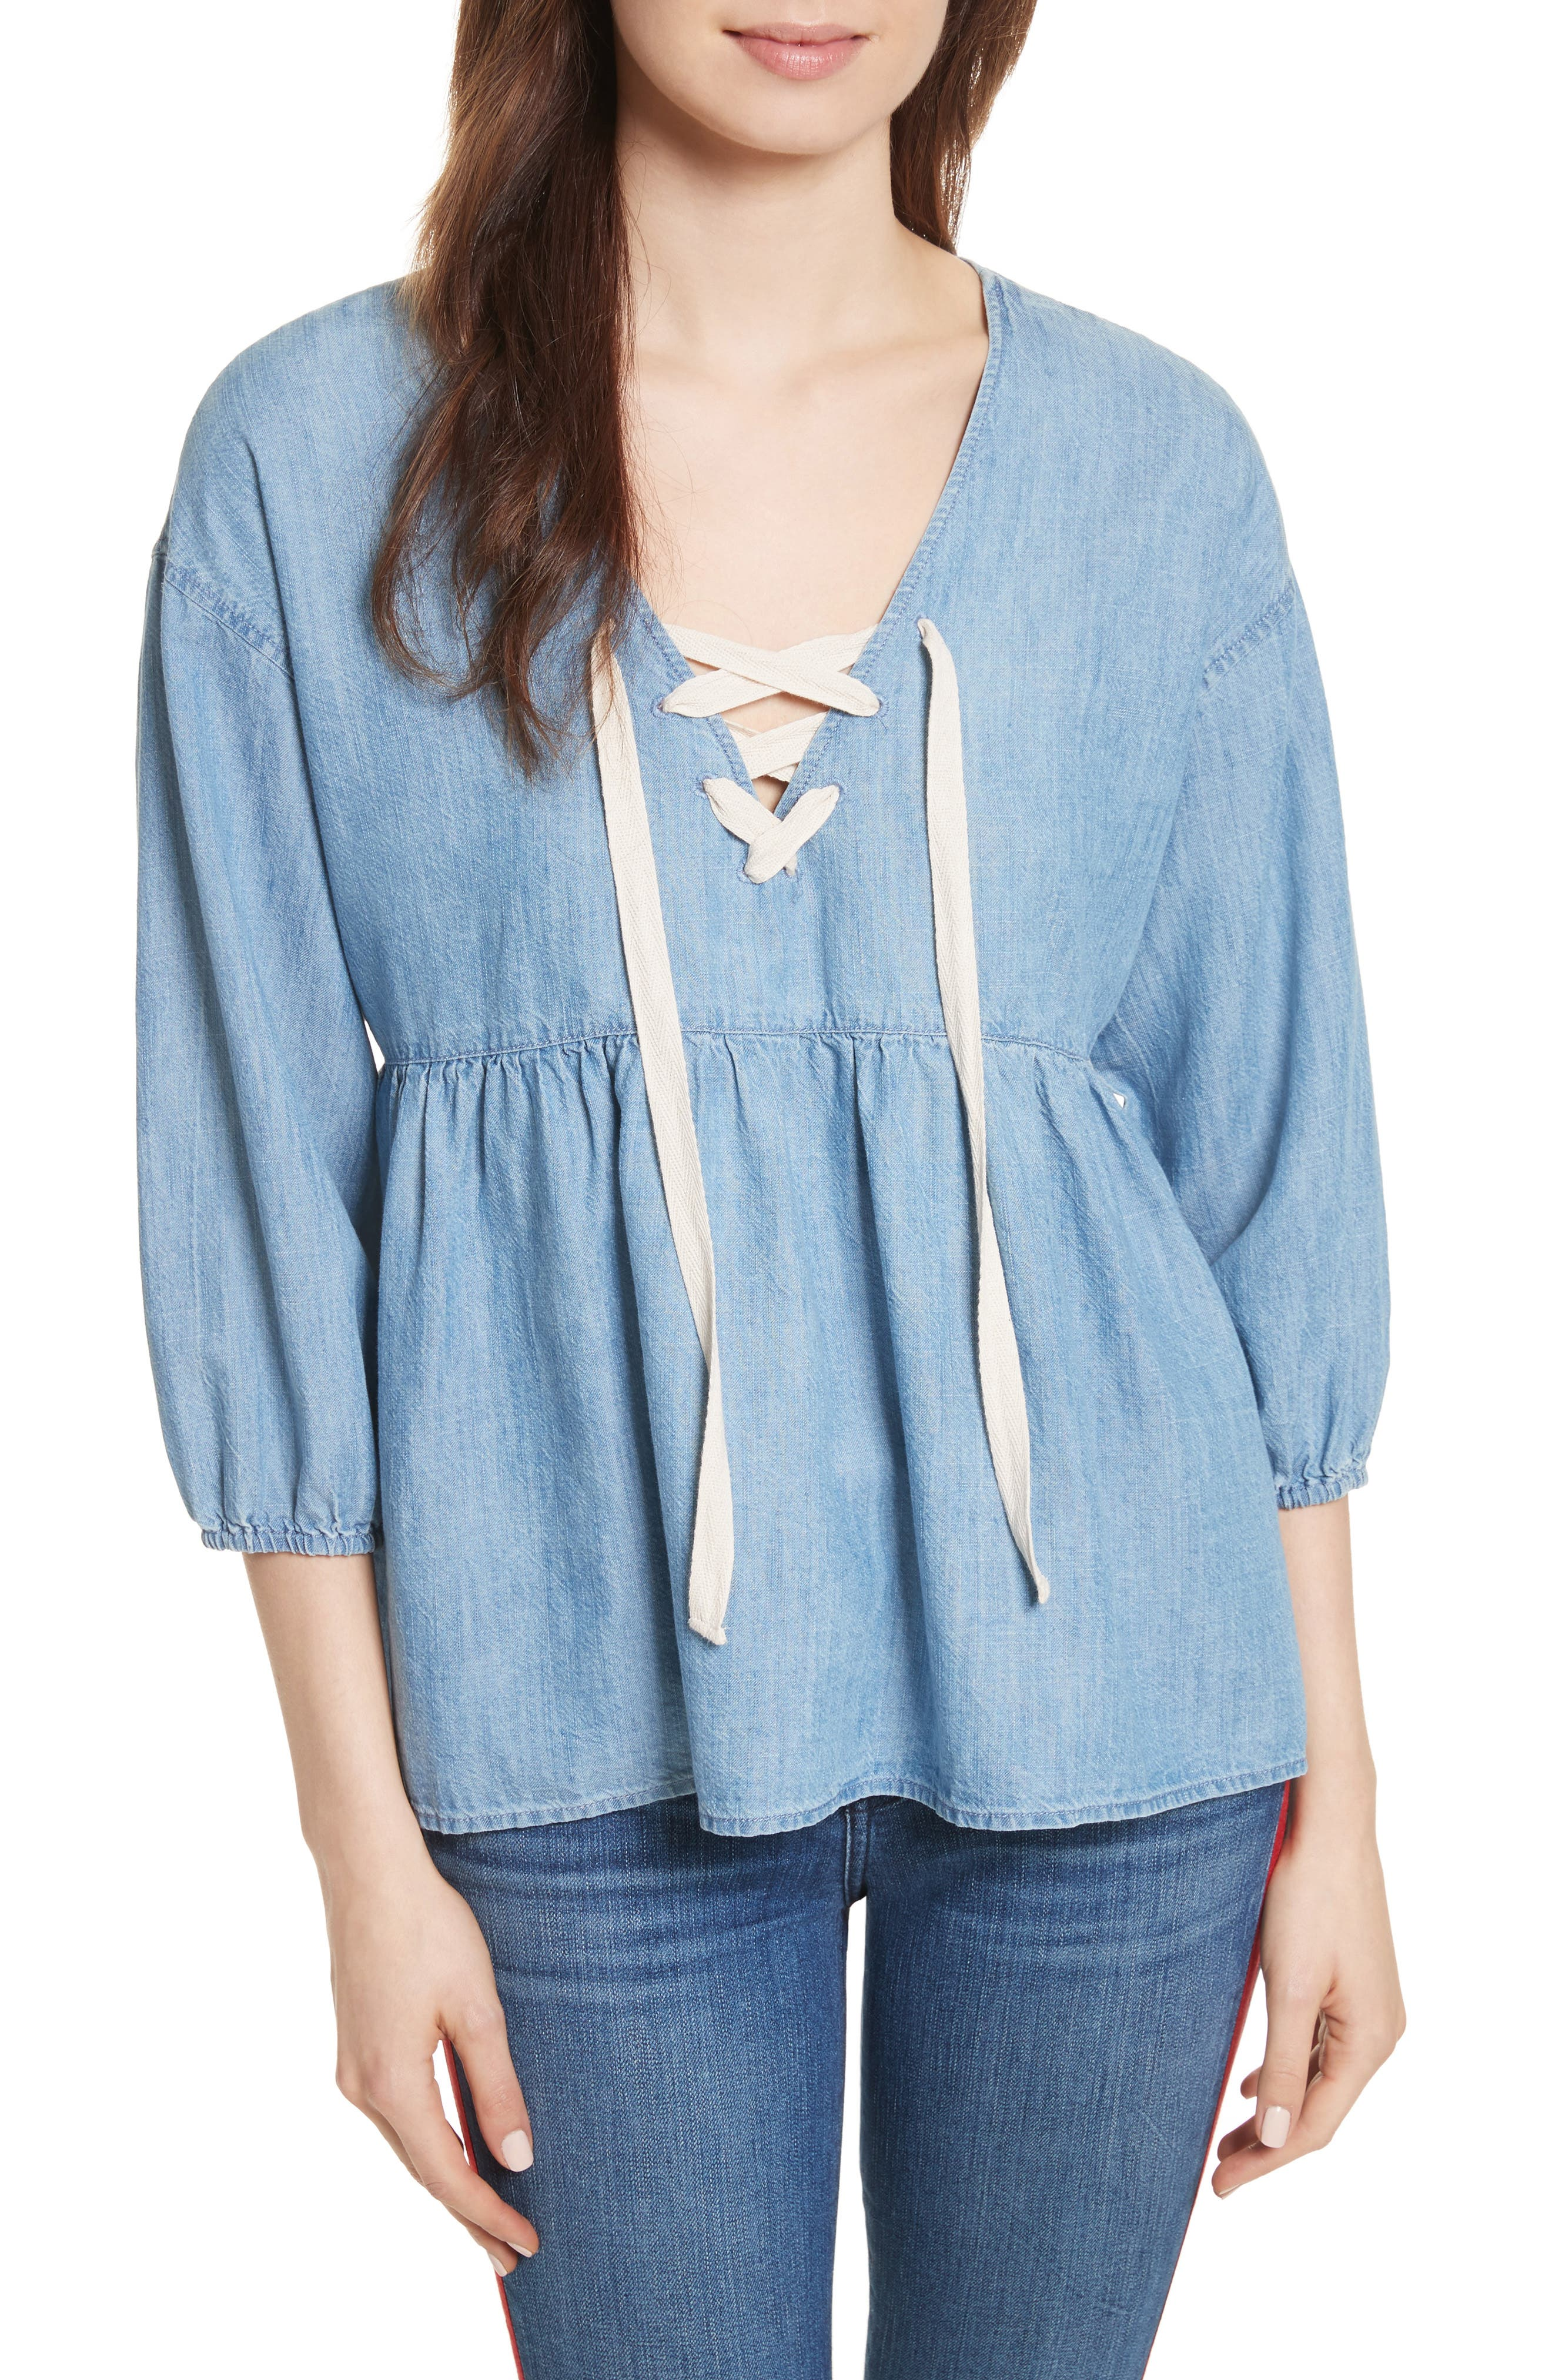 Bealette Lace-Up Chambray Top,                             Main thumbnail 1, color,                             481